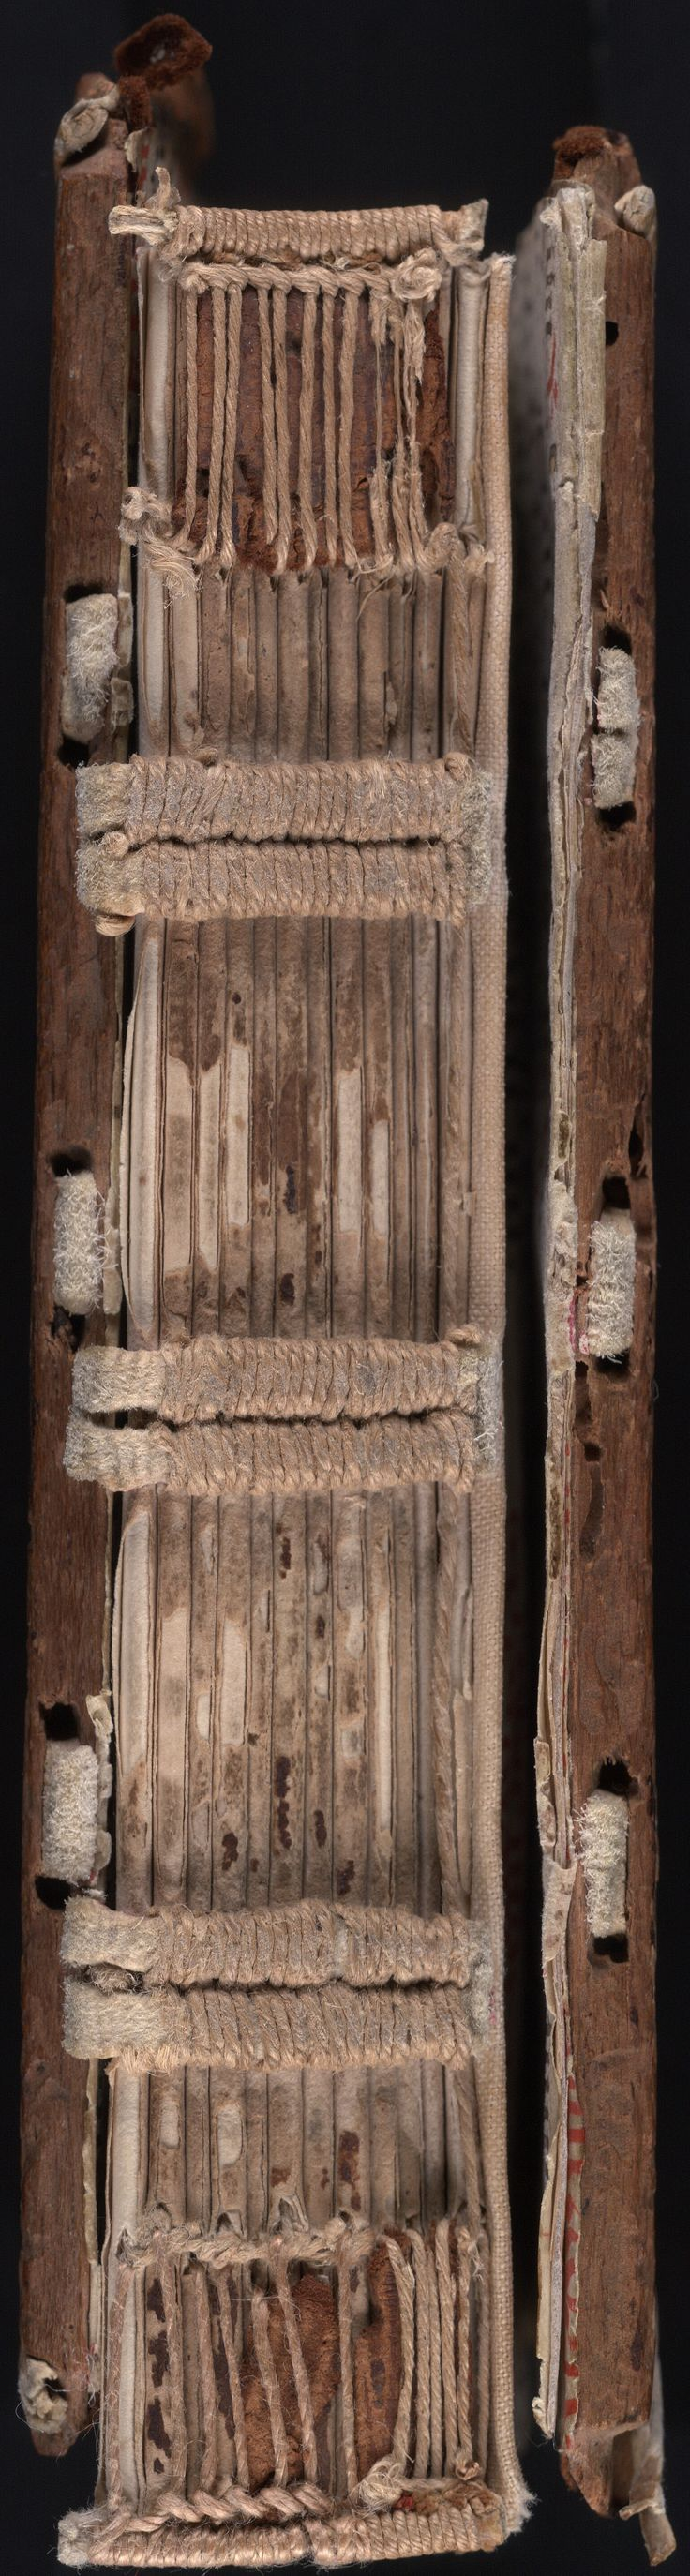 This Gothic manuscript is a Confessionale written on paper in Florence, Italy, circa 1500 CE. The original binding consists of sewing on three tawed, slit straps, laced through tunnels in the edges of wooden boards into rectangular channels on their outer face. Twisted, tawed cores of plain, wound endbands are laid in grooves. All supports pegged and filled in, possibly with gypsum. Beinecke Library, MS 4 (Yale University, New Haven , CT). Use of image permitted for academic purposes.